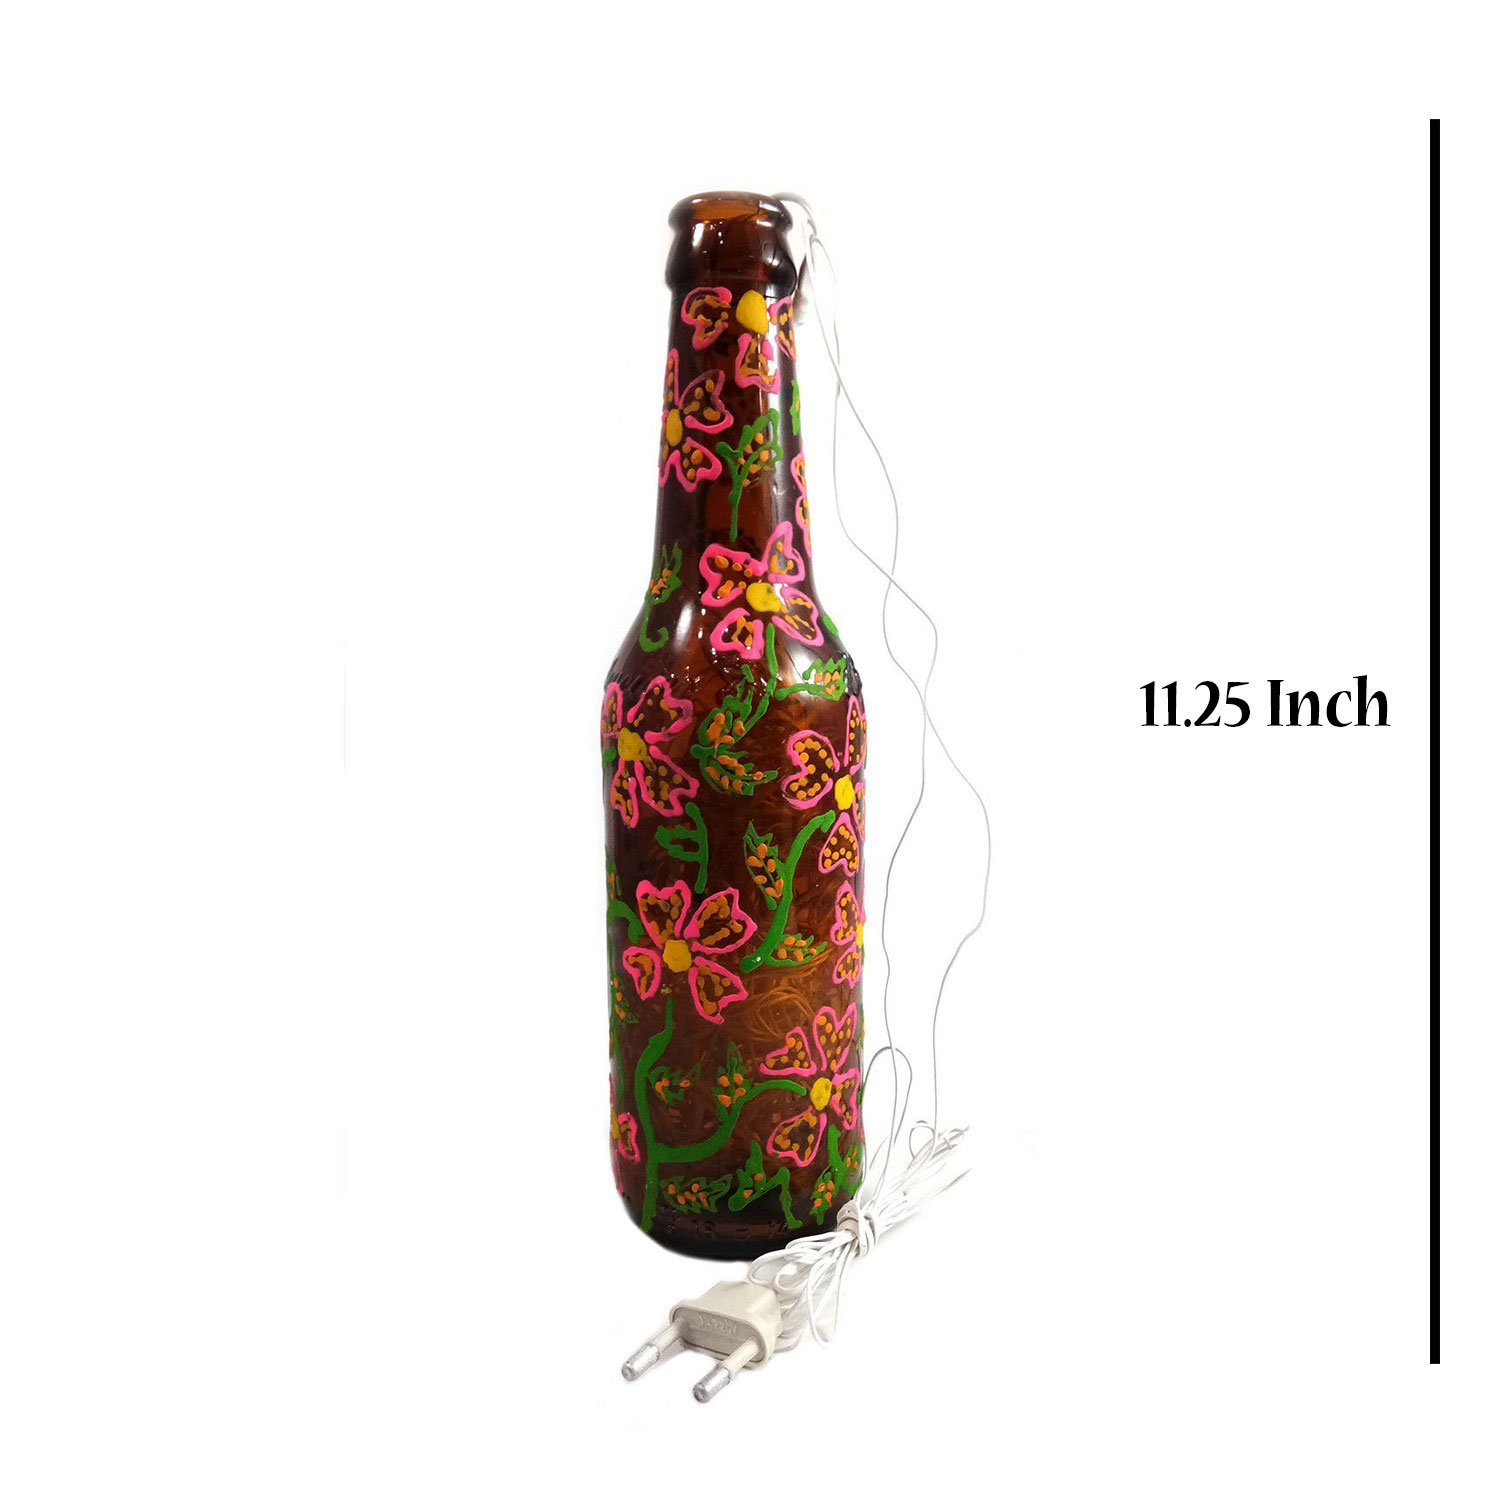 India Meets India Decorative Bottle Shape Electric Lamp Hand Painted Bottle Shape Lamp Lanterns Use As Table Lamp, Desk Lamp, Hanging Lamp Qty 1 Decorative Accents